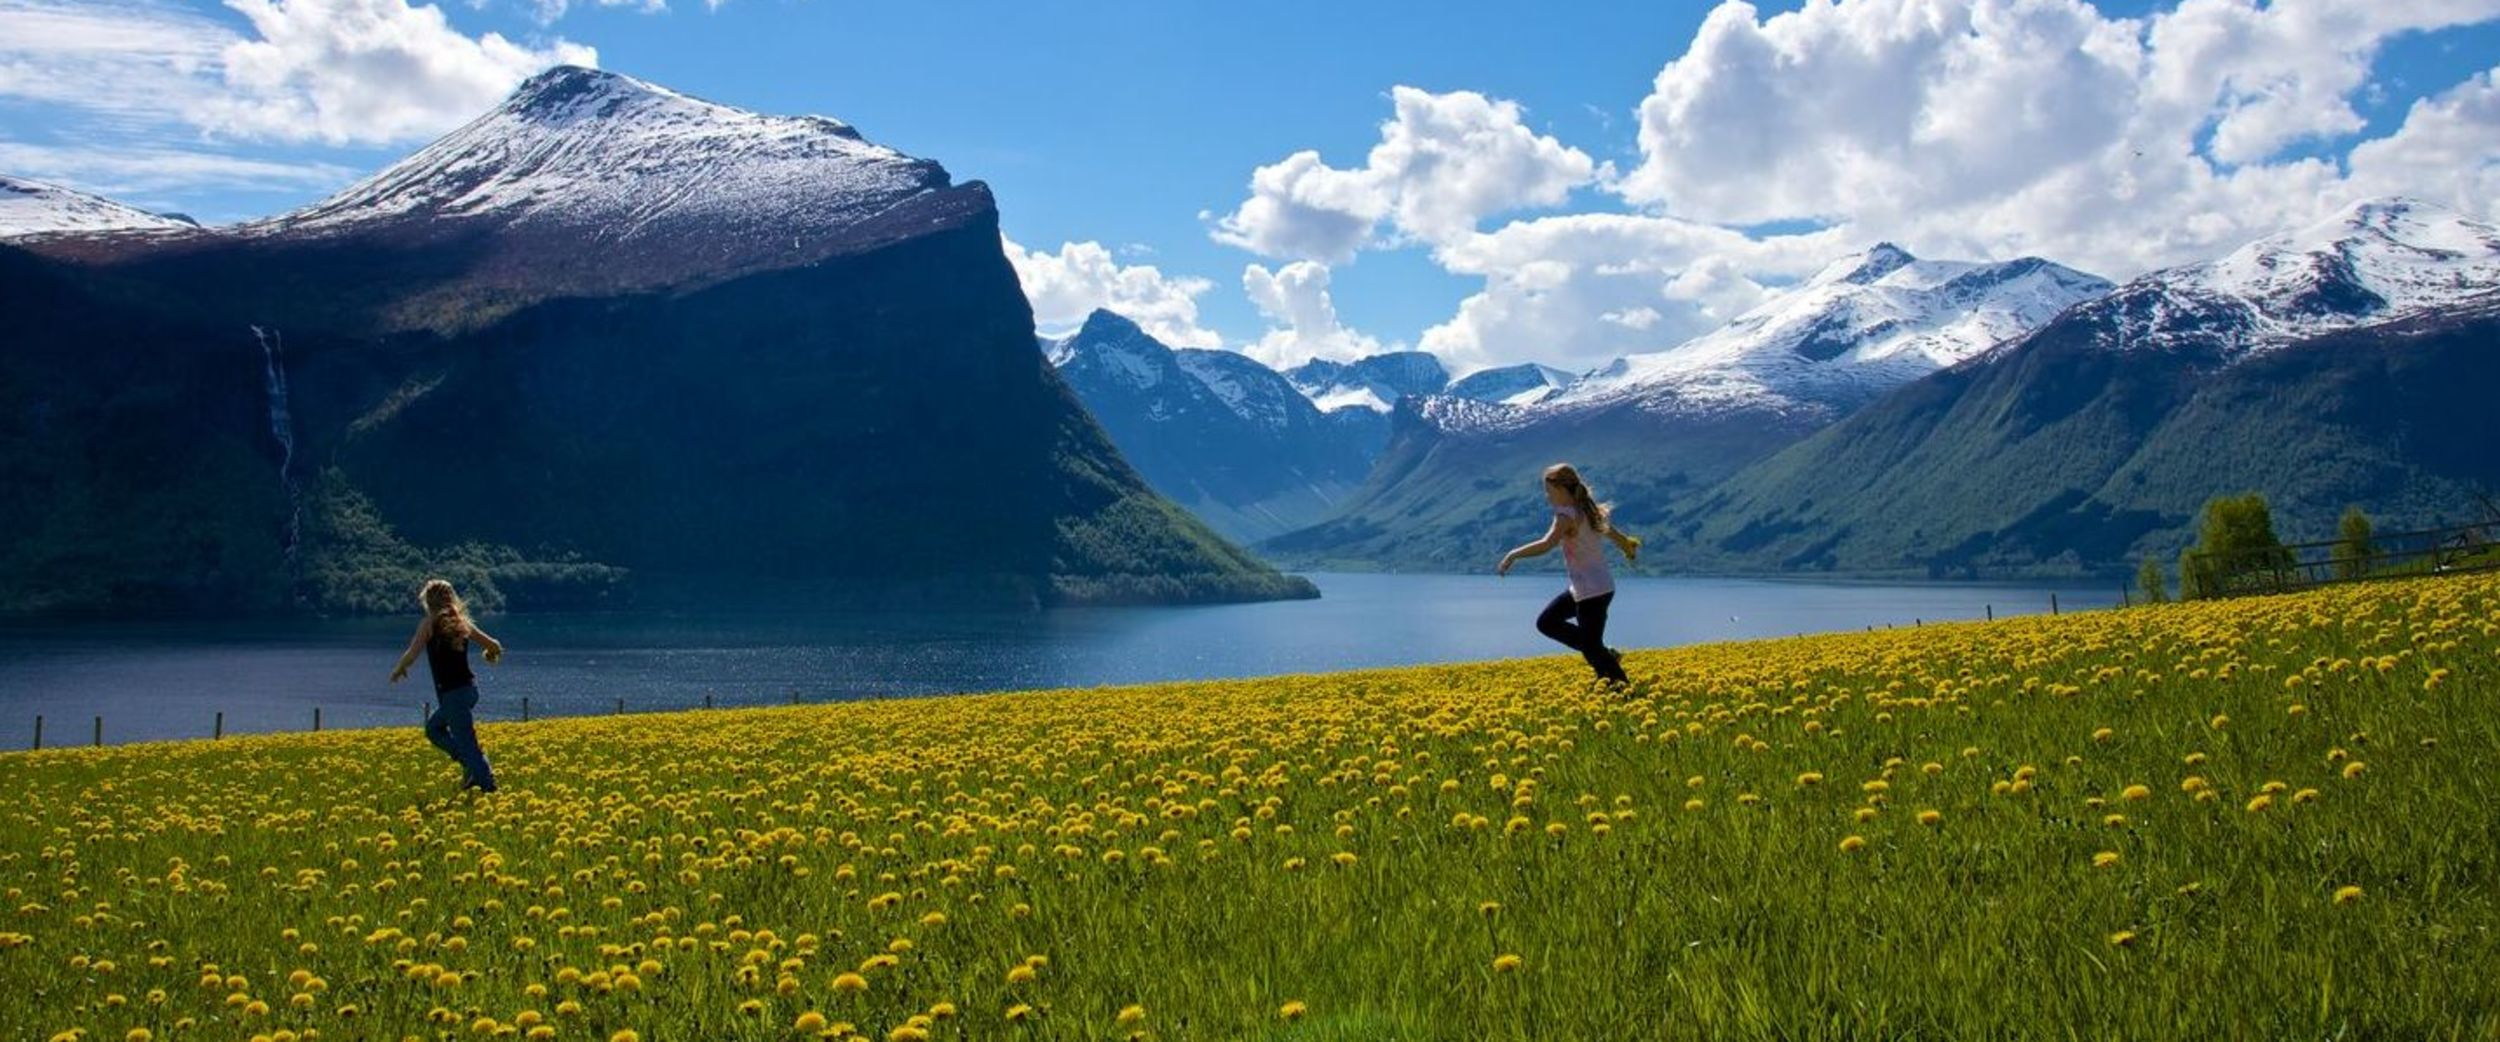 Girls playing in a flowery meadow. Photo: Øyvind Klungnes Heen, visitnorway.com